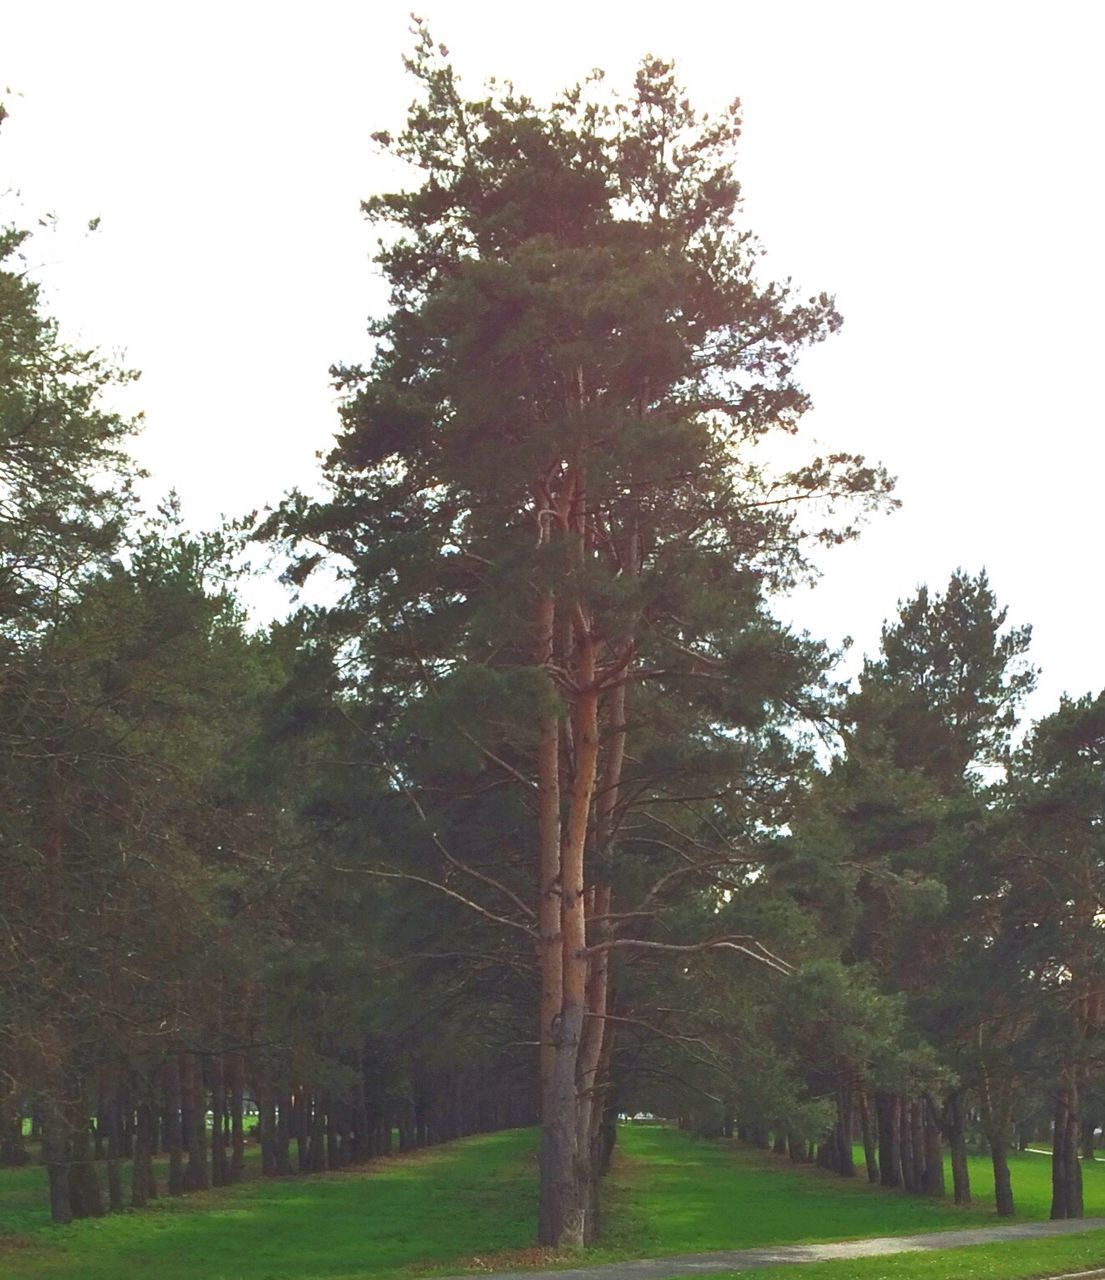 tree, tree trunk, nature, branch, tranquility, growth, landscape, lone, no people, beauty in nature, outdoors, grass, day, sky